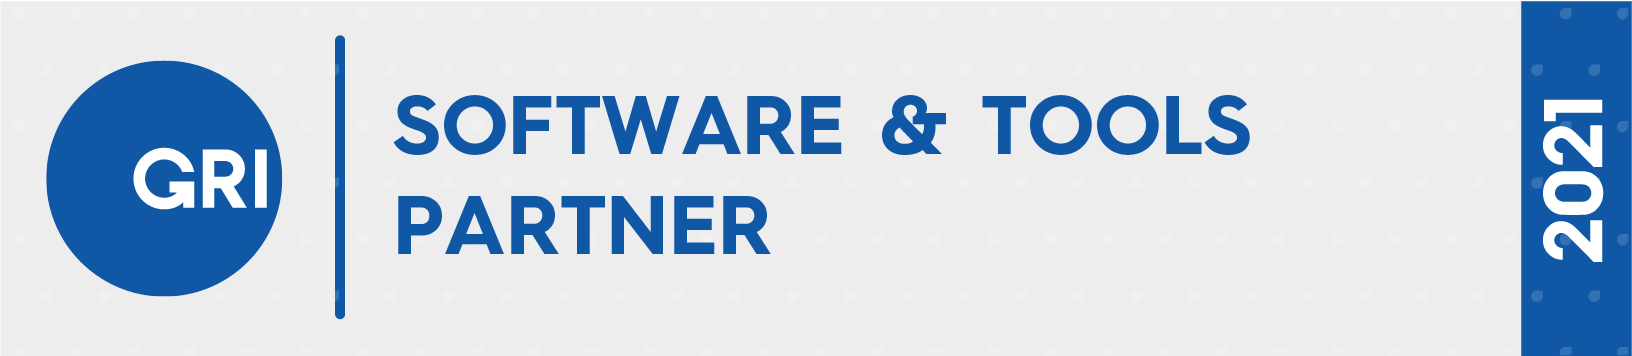 Software and tools Partner-01-1